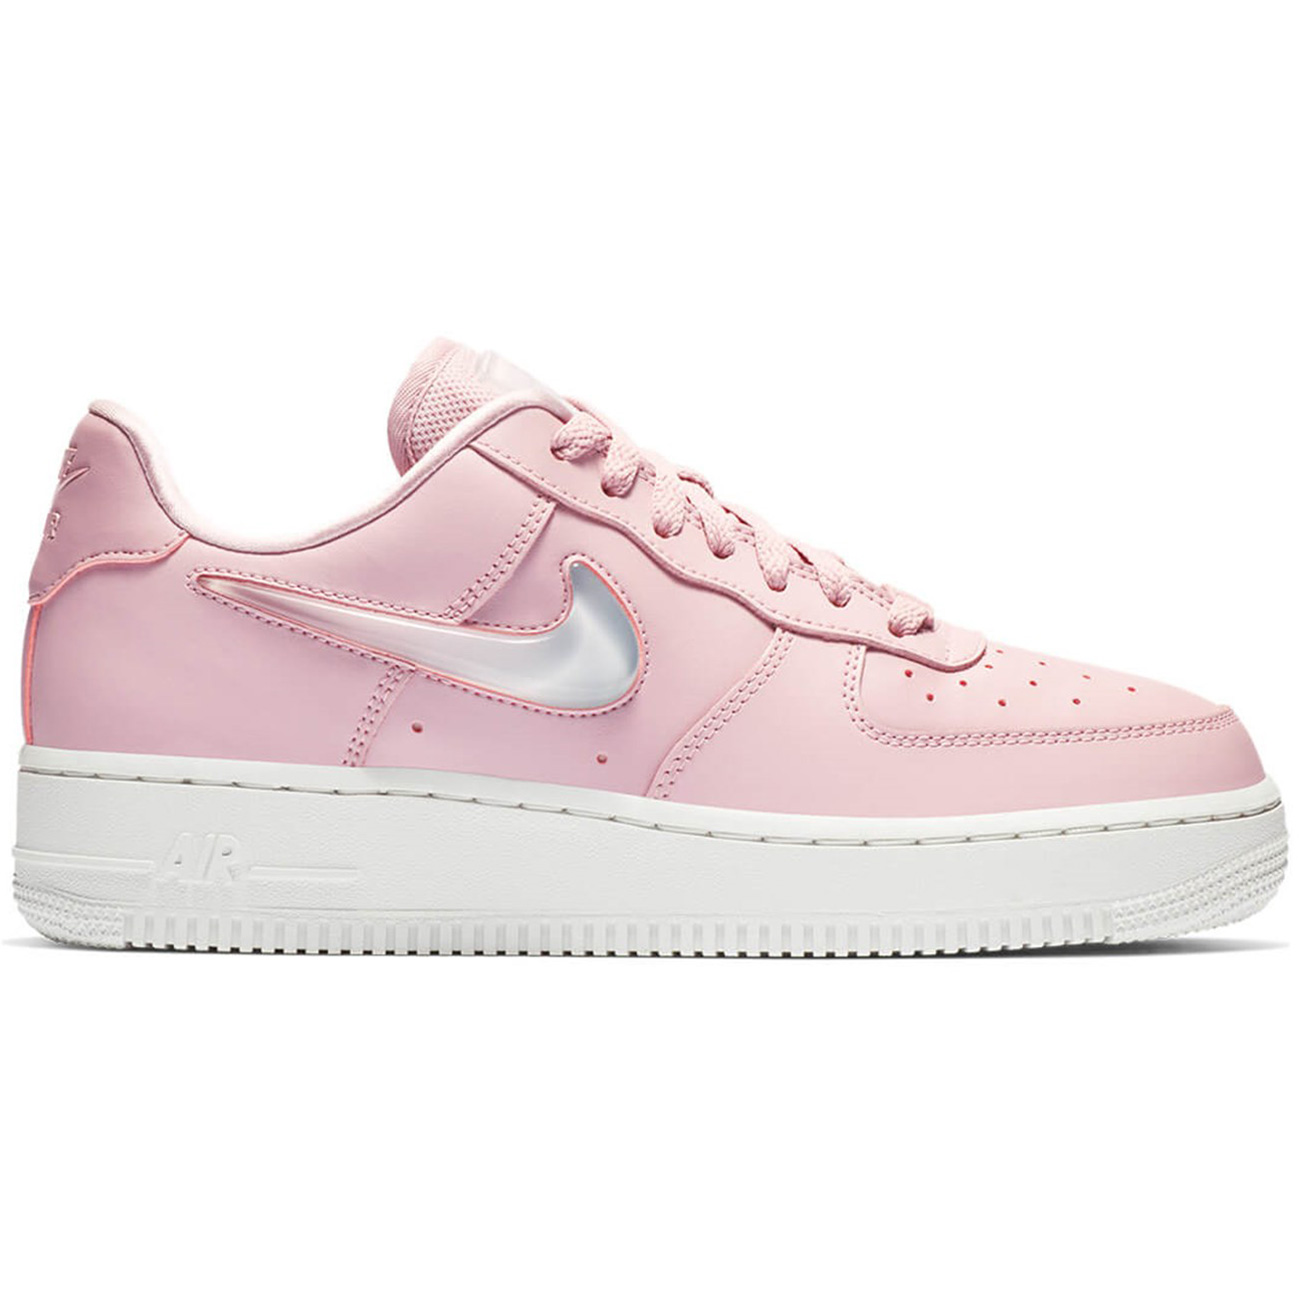 Nike W Air Force 1 '07 SE PRM Damen Sneaker rosa weiß AH6827 500